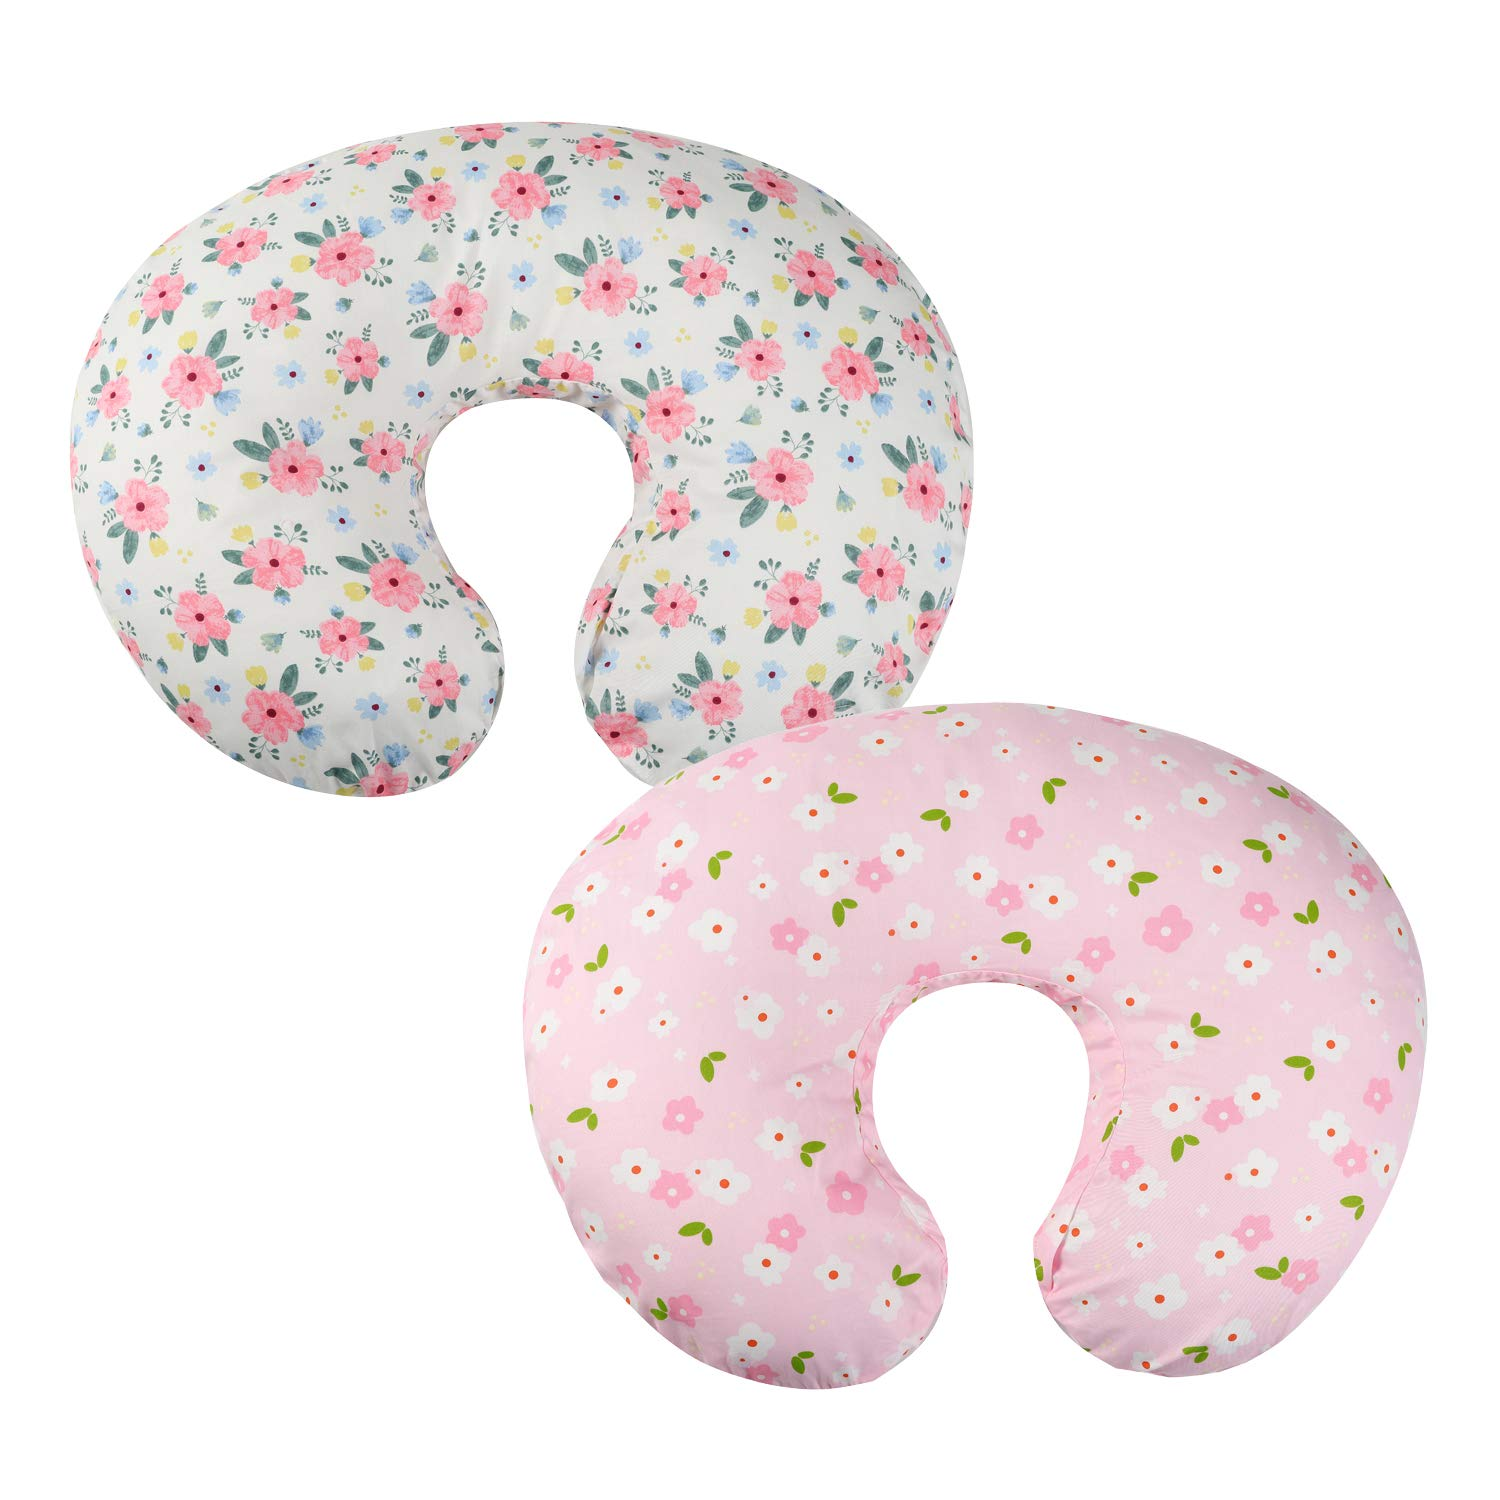 Onacosht Pink Floral Cotton Nursing Pillow Cover for Baby Girls, 2 Pack, Ultra Soft Snug Fits on Infant Breastfeeding Support Pillow